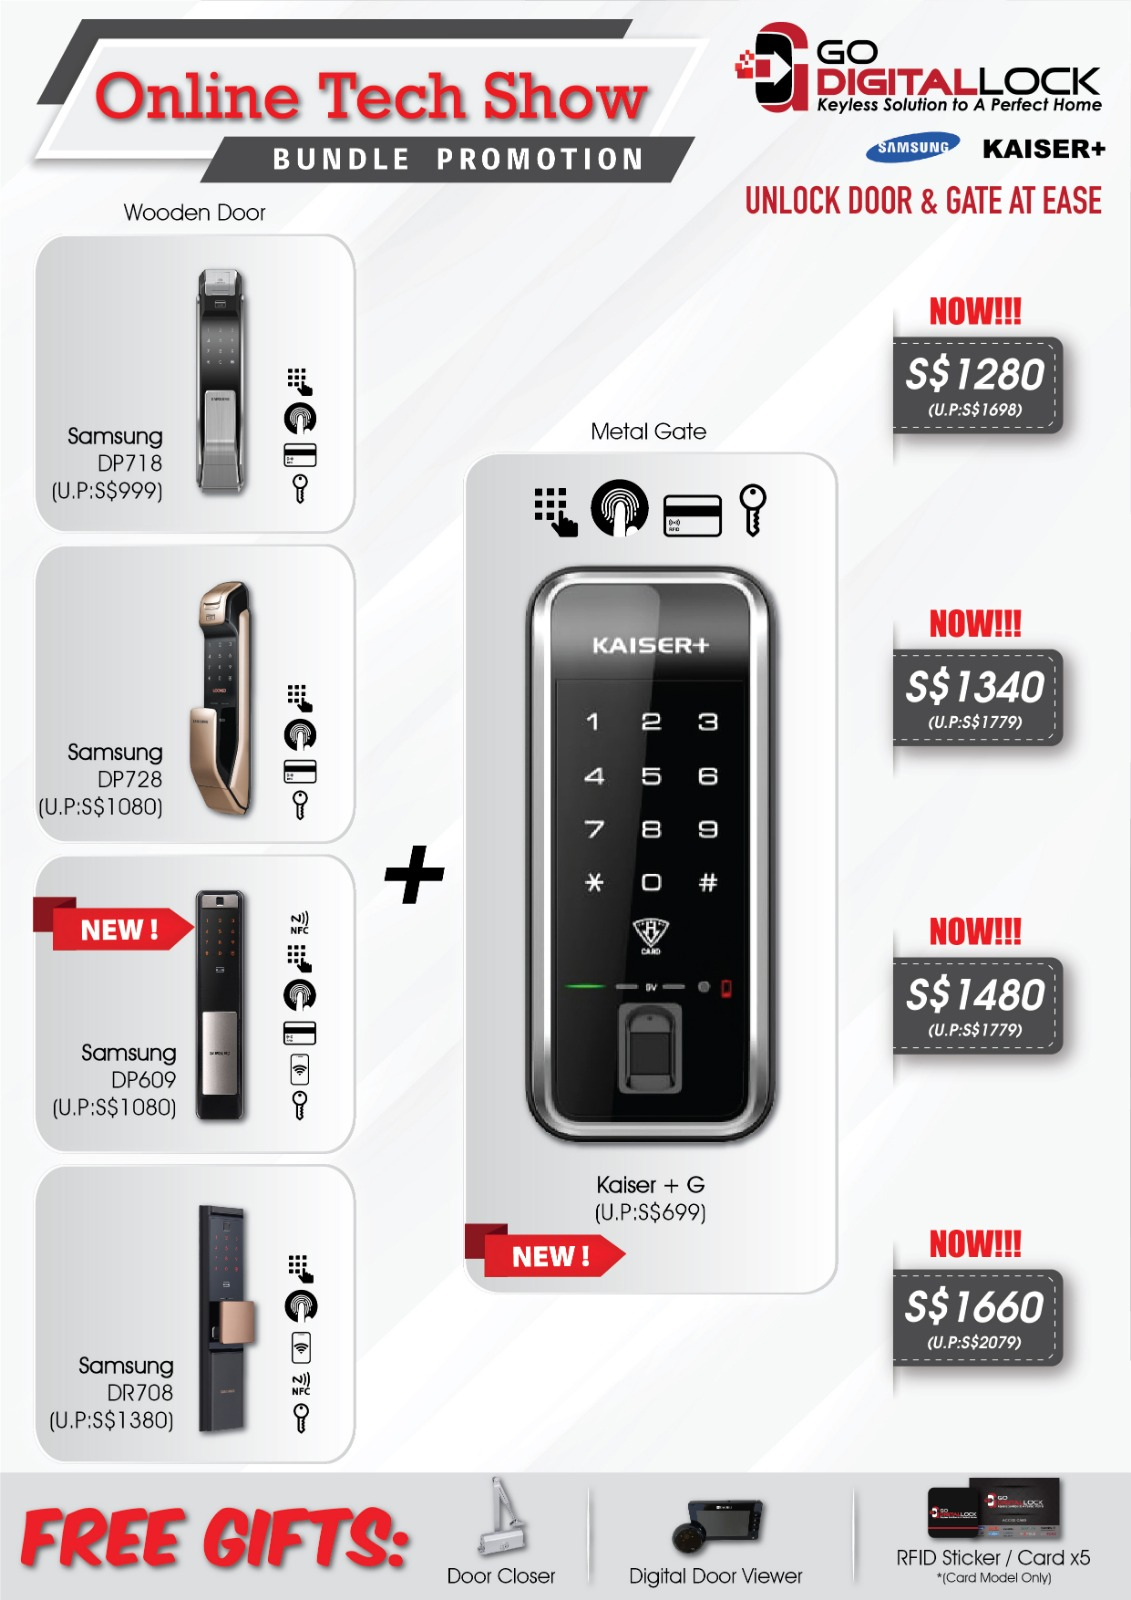 ONLINE TECH SHOW DIGITAL LOCK BUNDLE DEALS 2020 SINGAPORE | Why Not Deals & Promotions